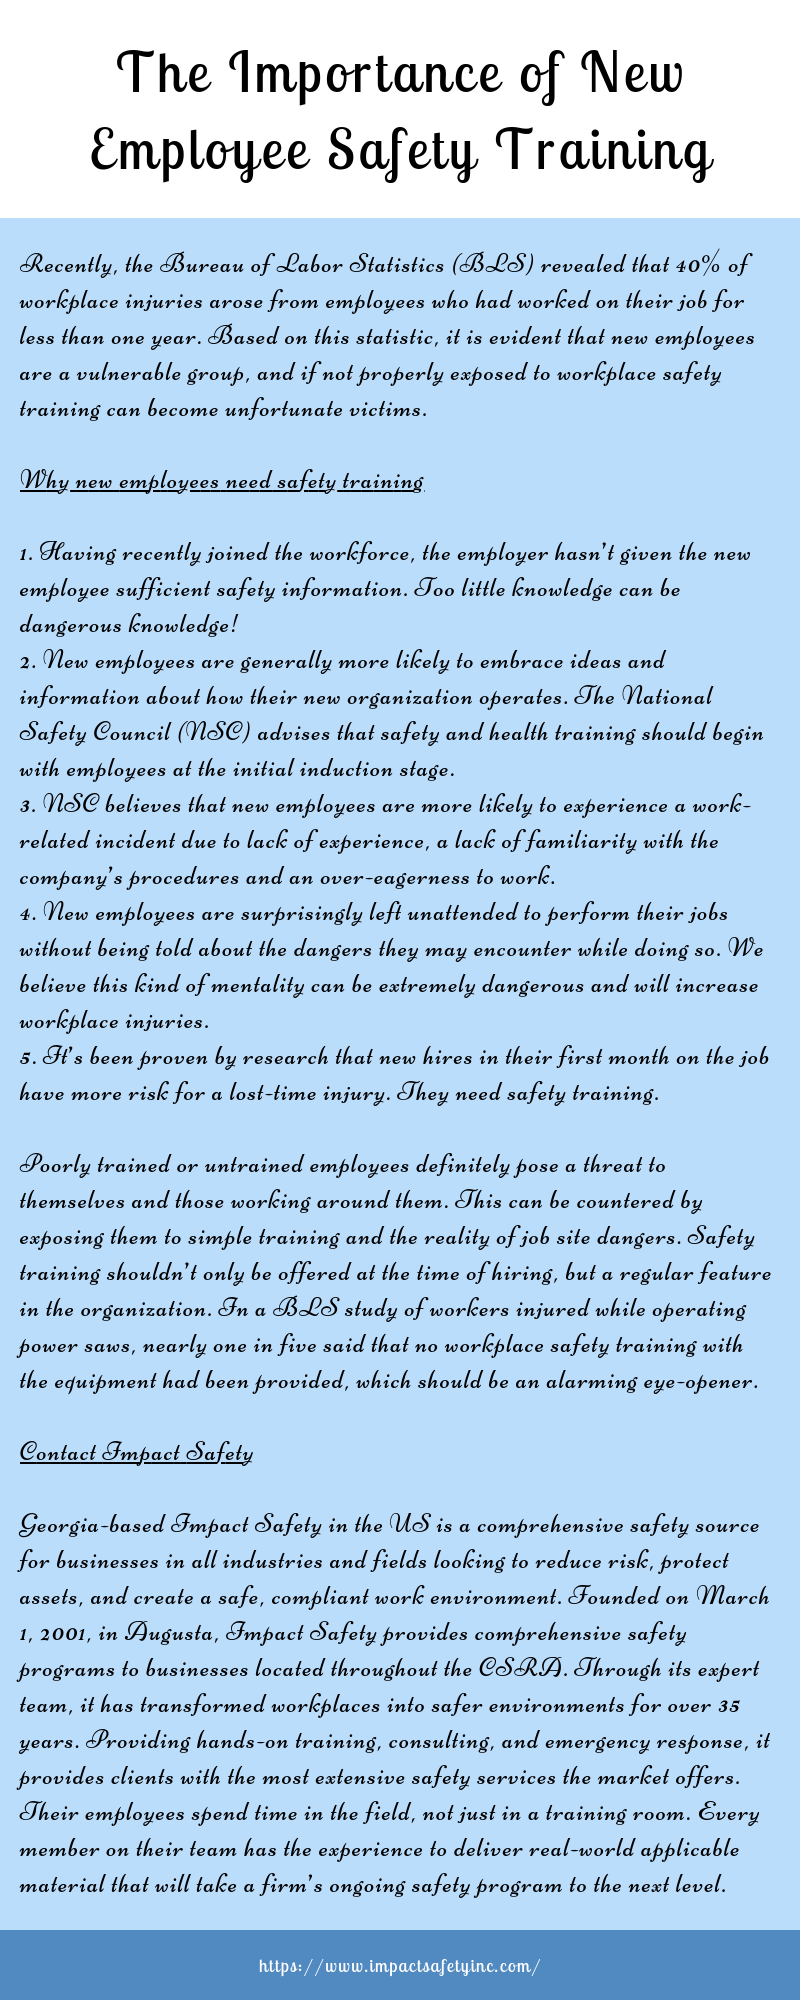 Impact Safety is a comprehensive source for businesses and